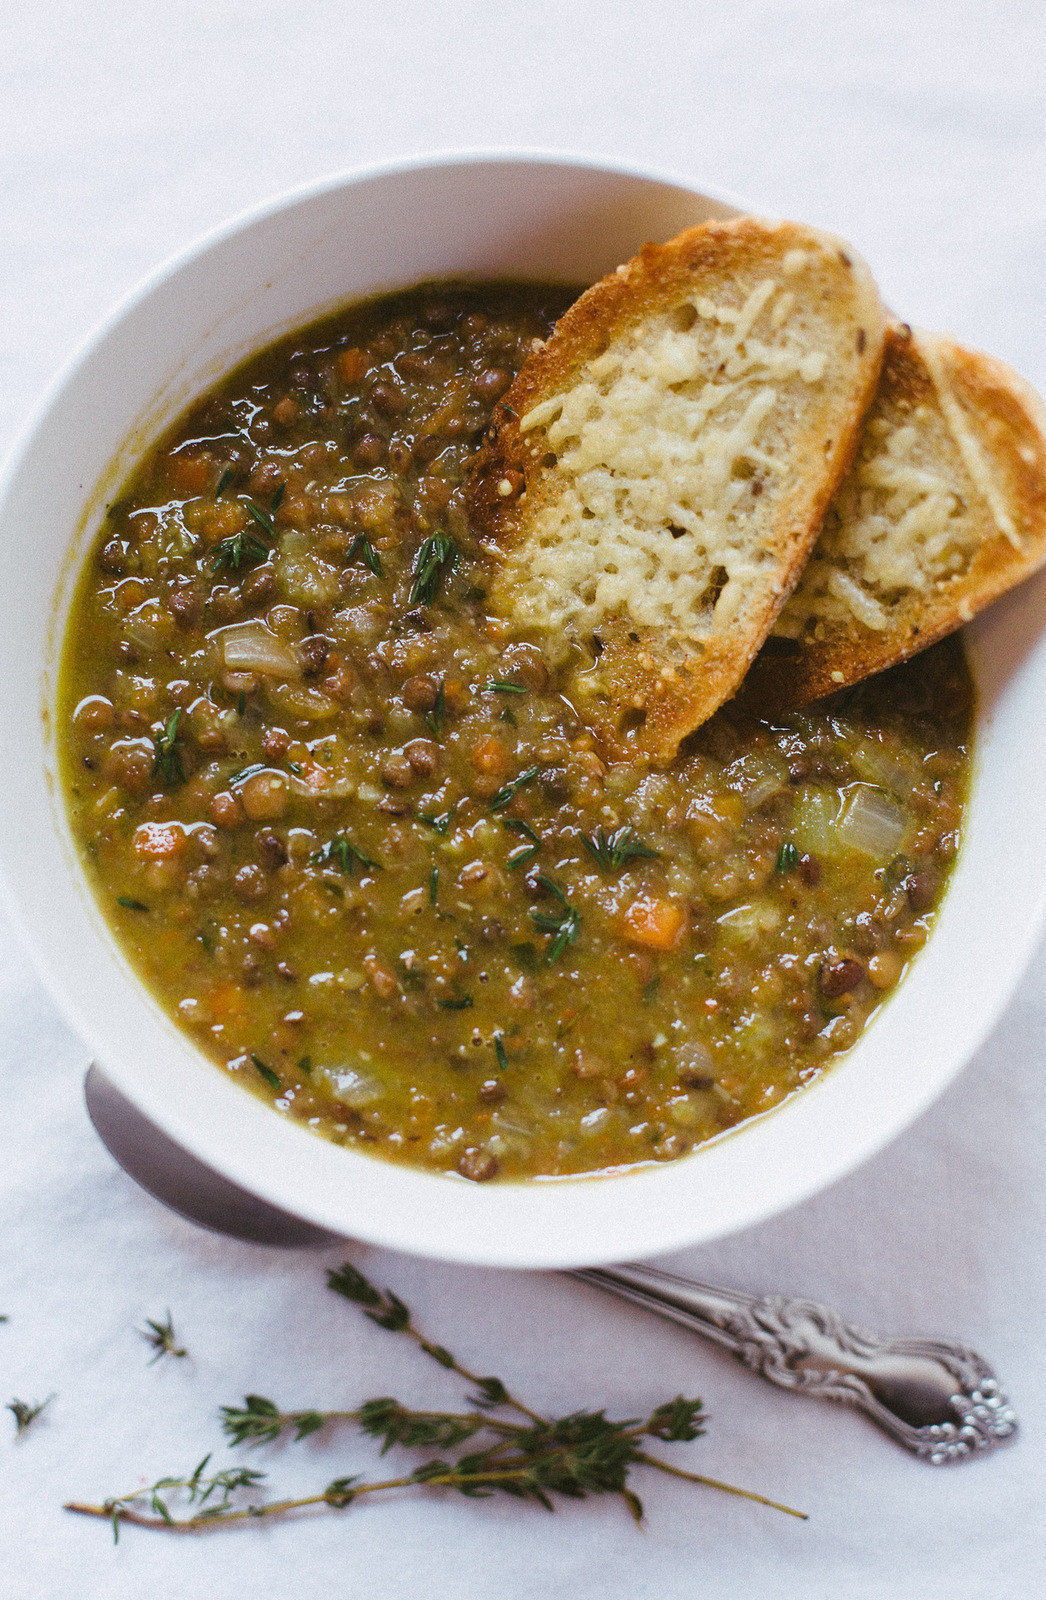 Lentil Soup is one of those powerhouse recipes that everyone needs to have in thei